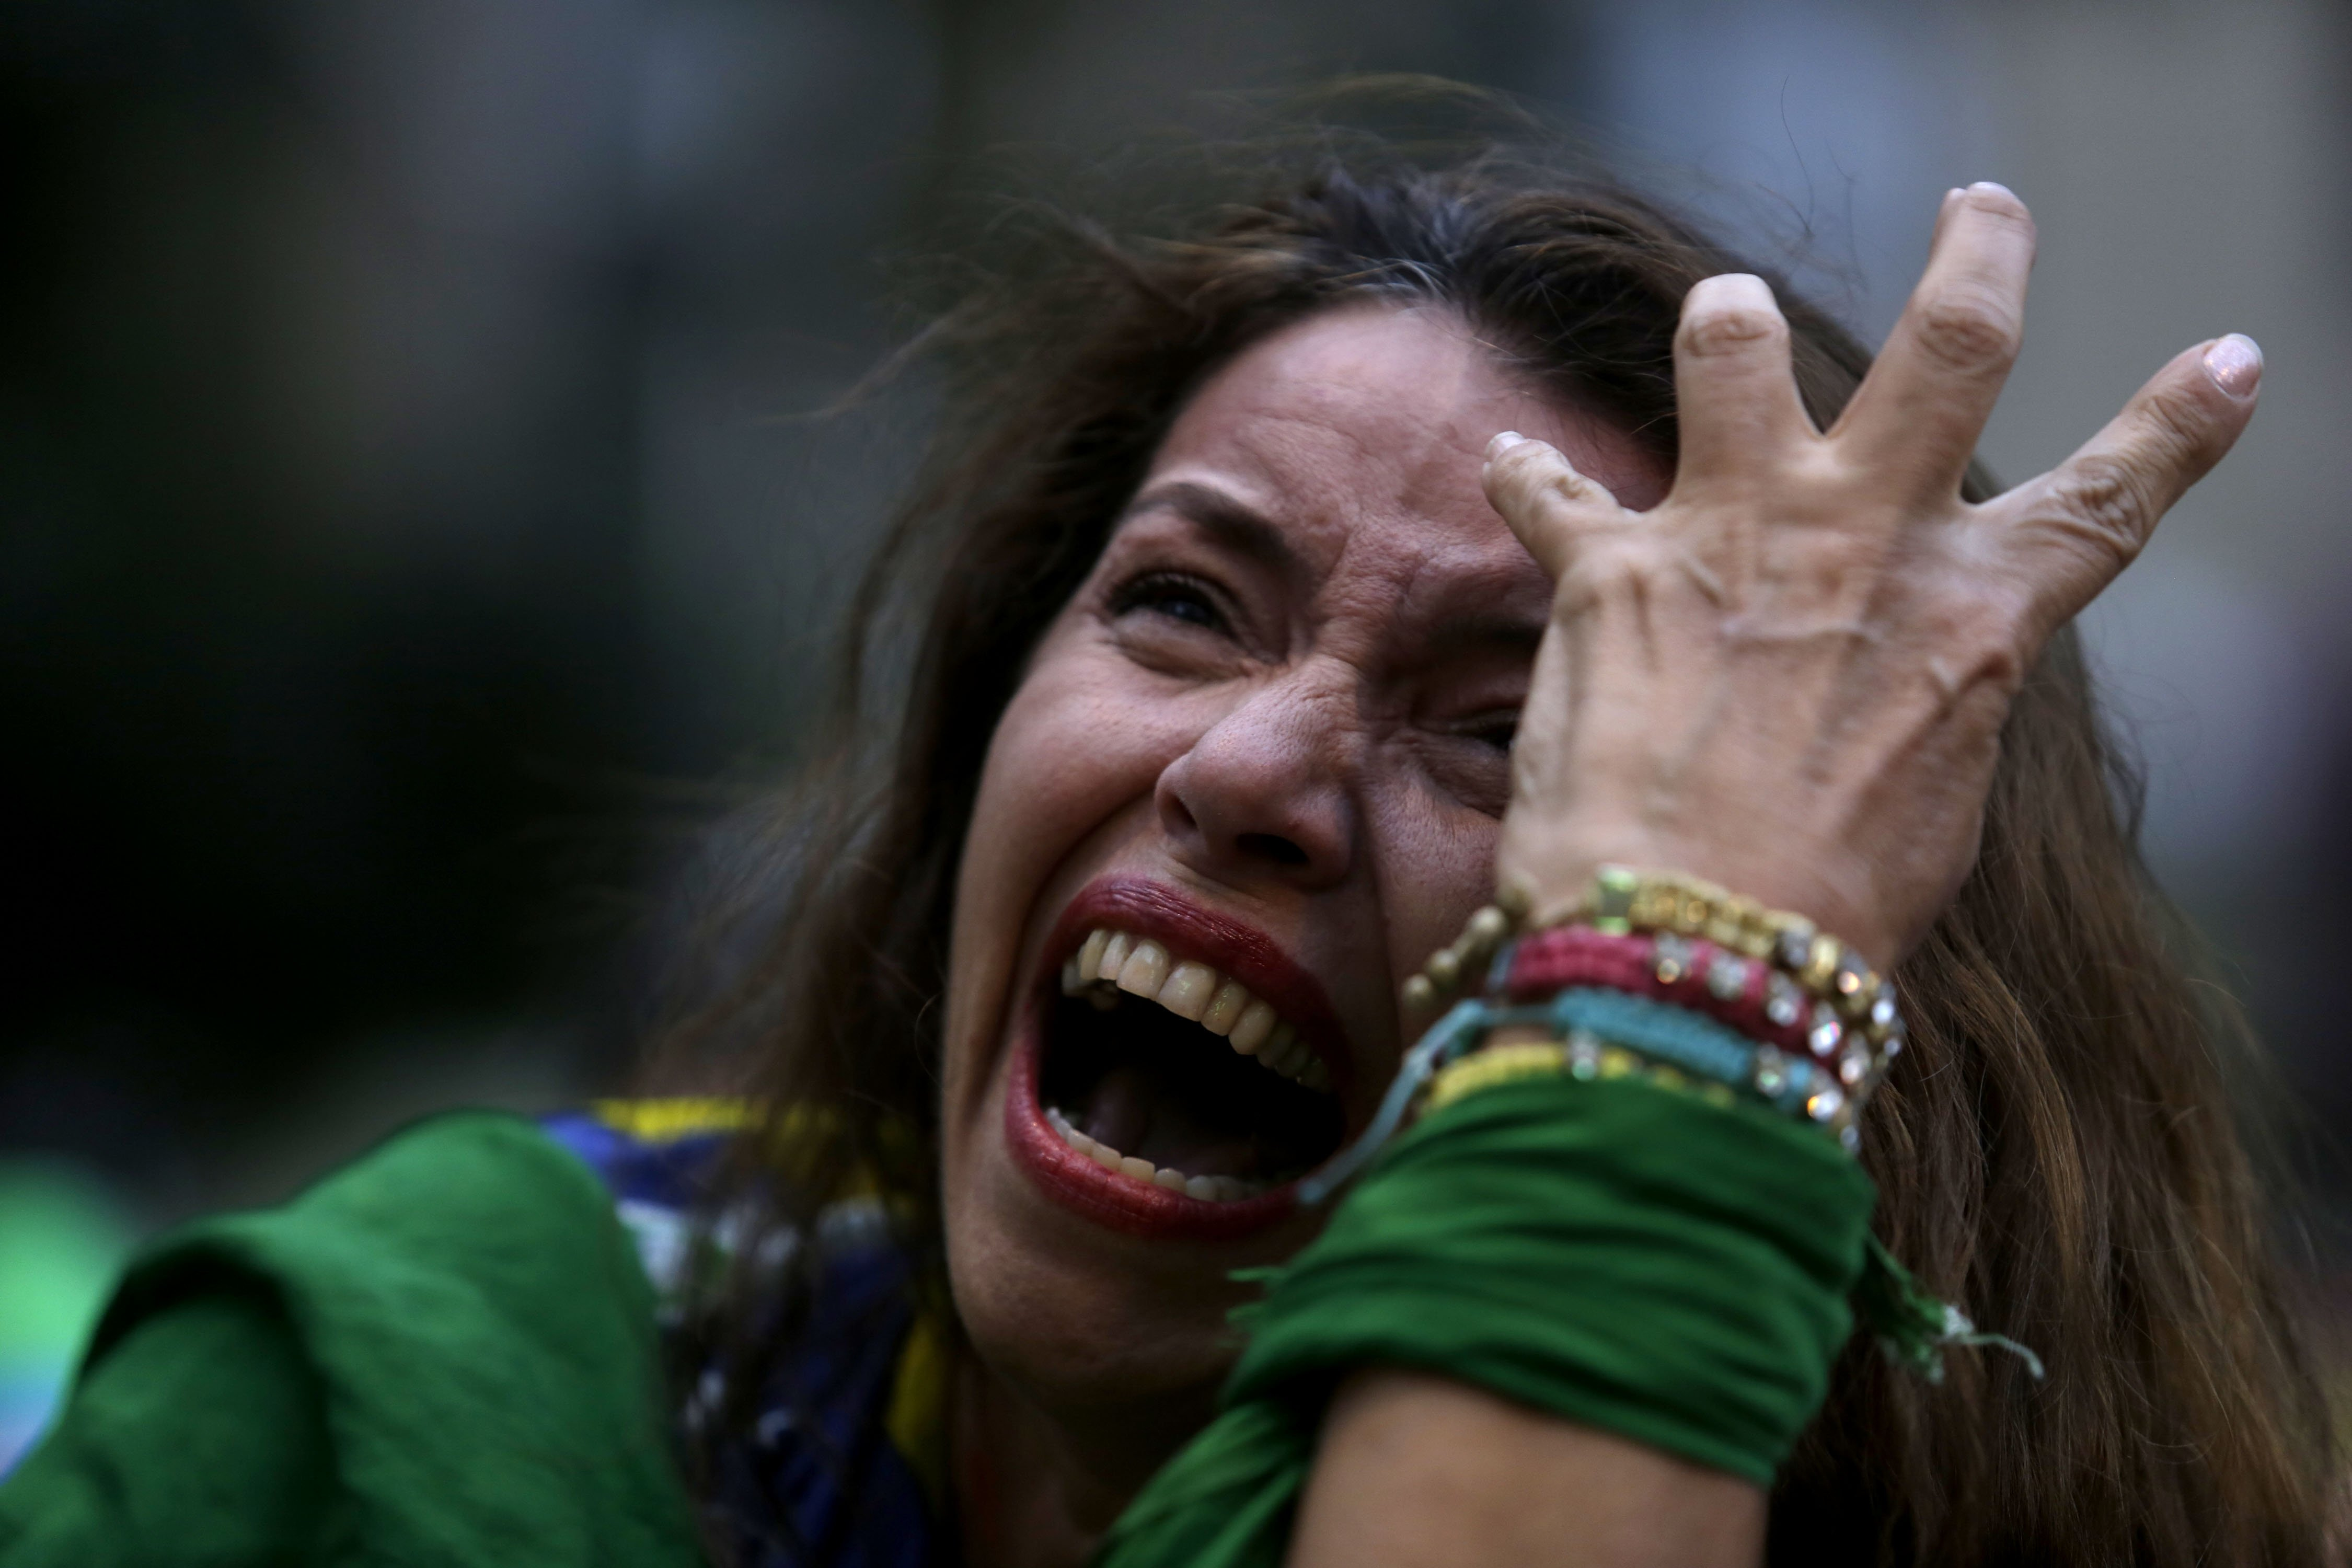 A Brazilian soccer fan cries as she watches her team get beat during a live telecast of the semifinals World Cup soccer match between Brazil and Germany, in Belo Horizonte, Brazil on July 08, 2014.